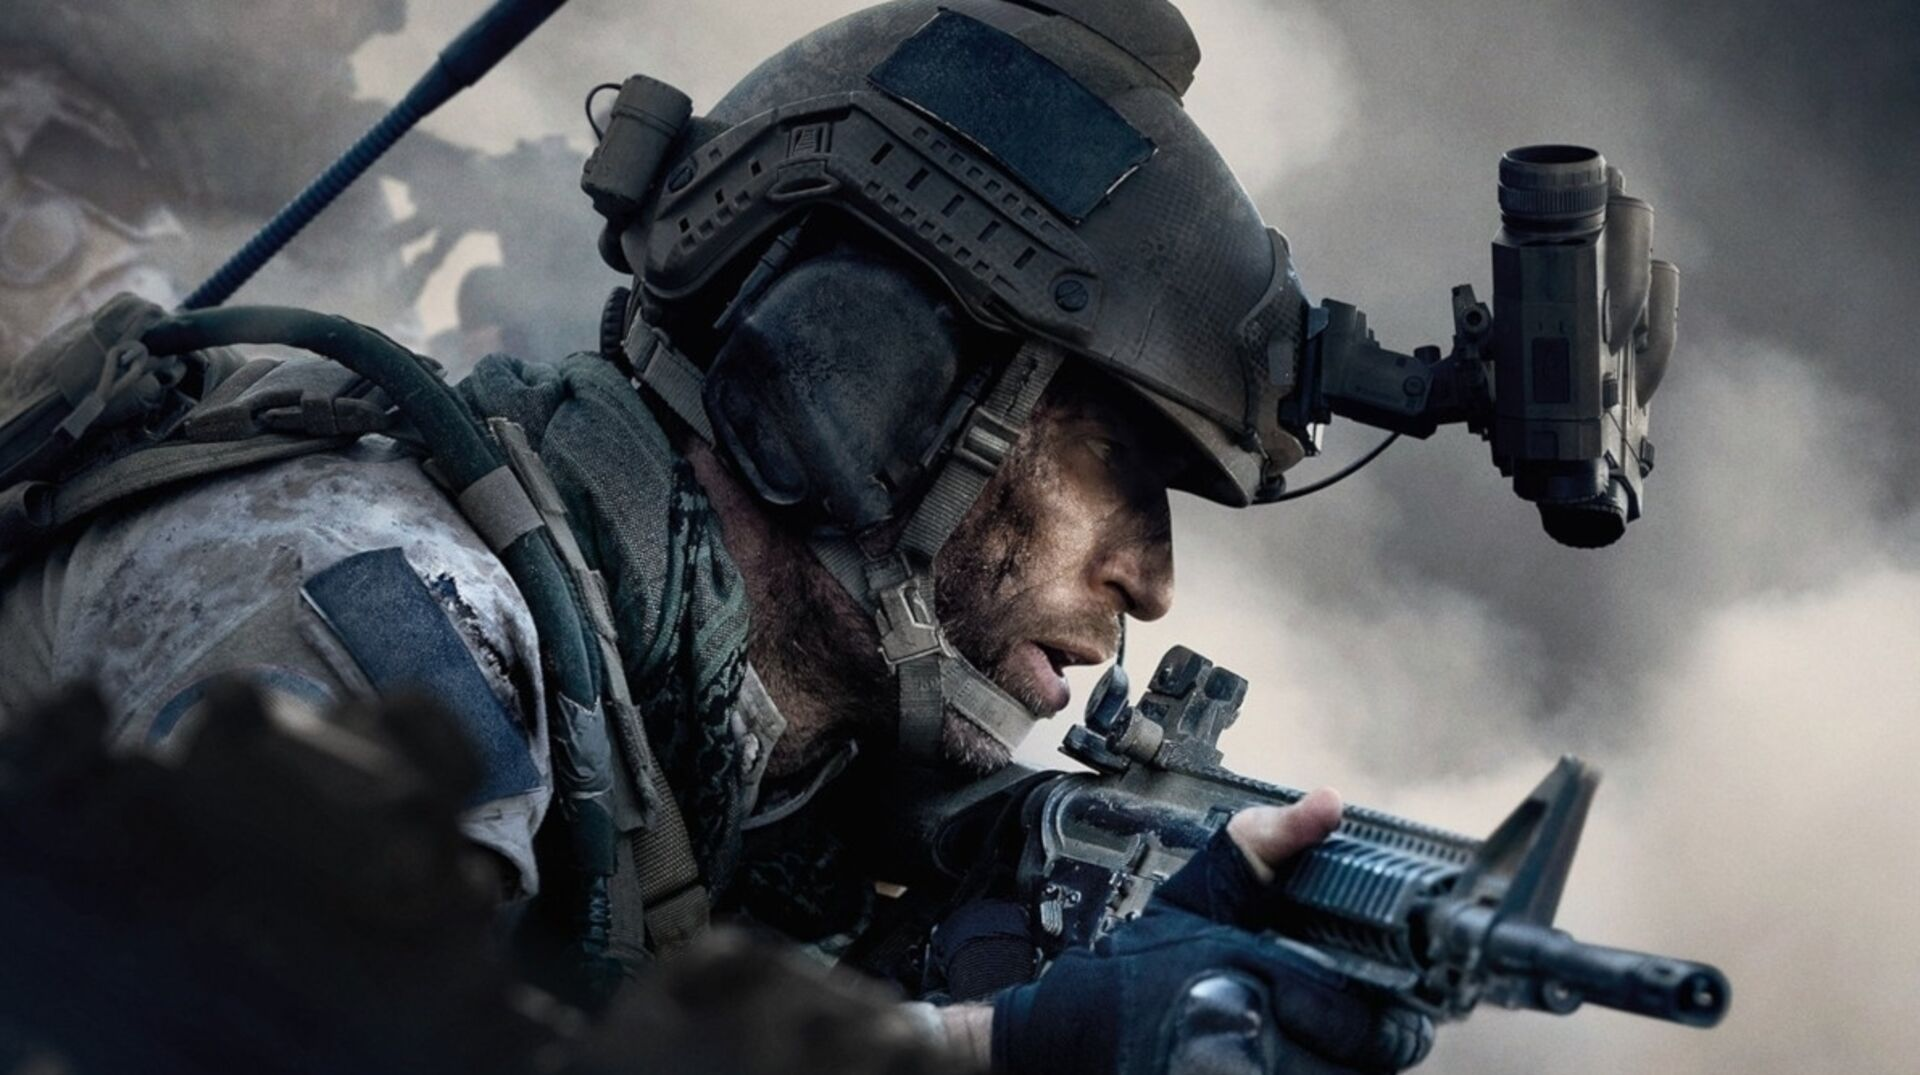 Call Of Duty Modern Warfare S First Season Launches With Biggest